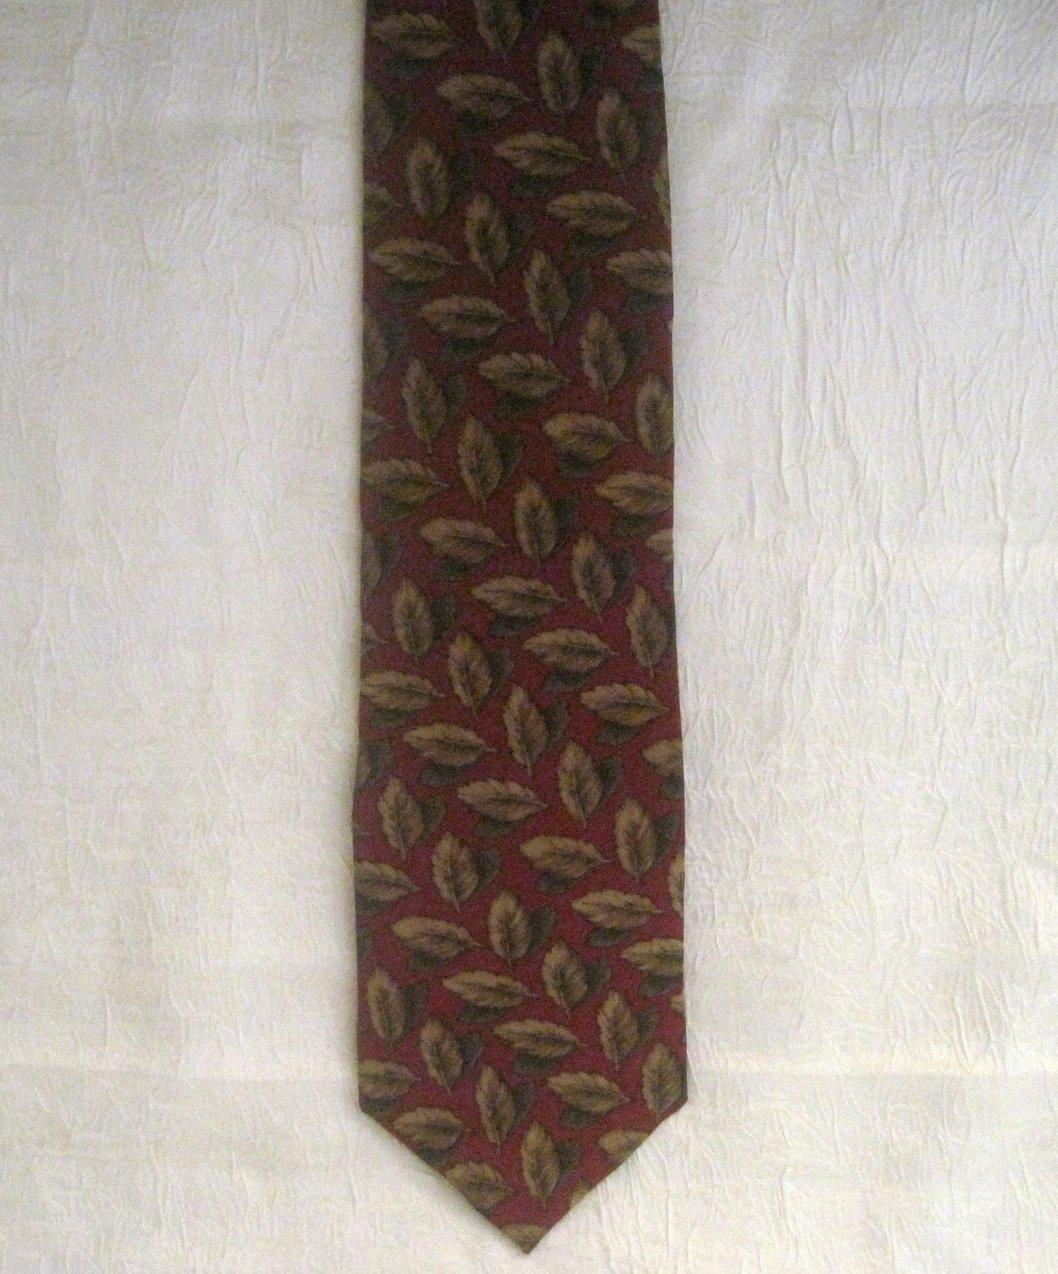 Image 1 of Jerry Garcia Collection 10 Landscape With Eye Necktie Tie